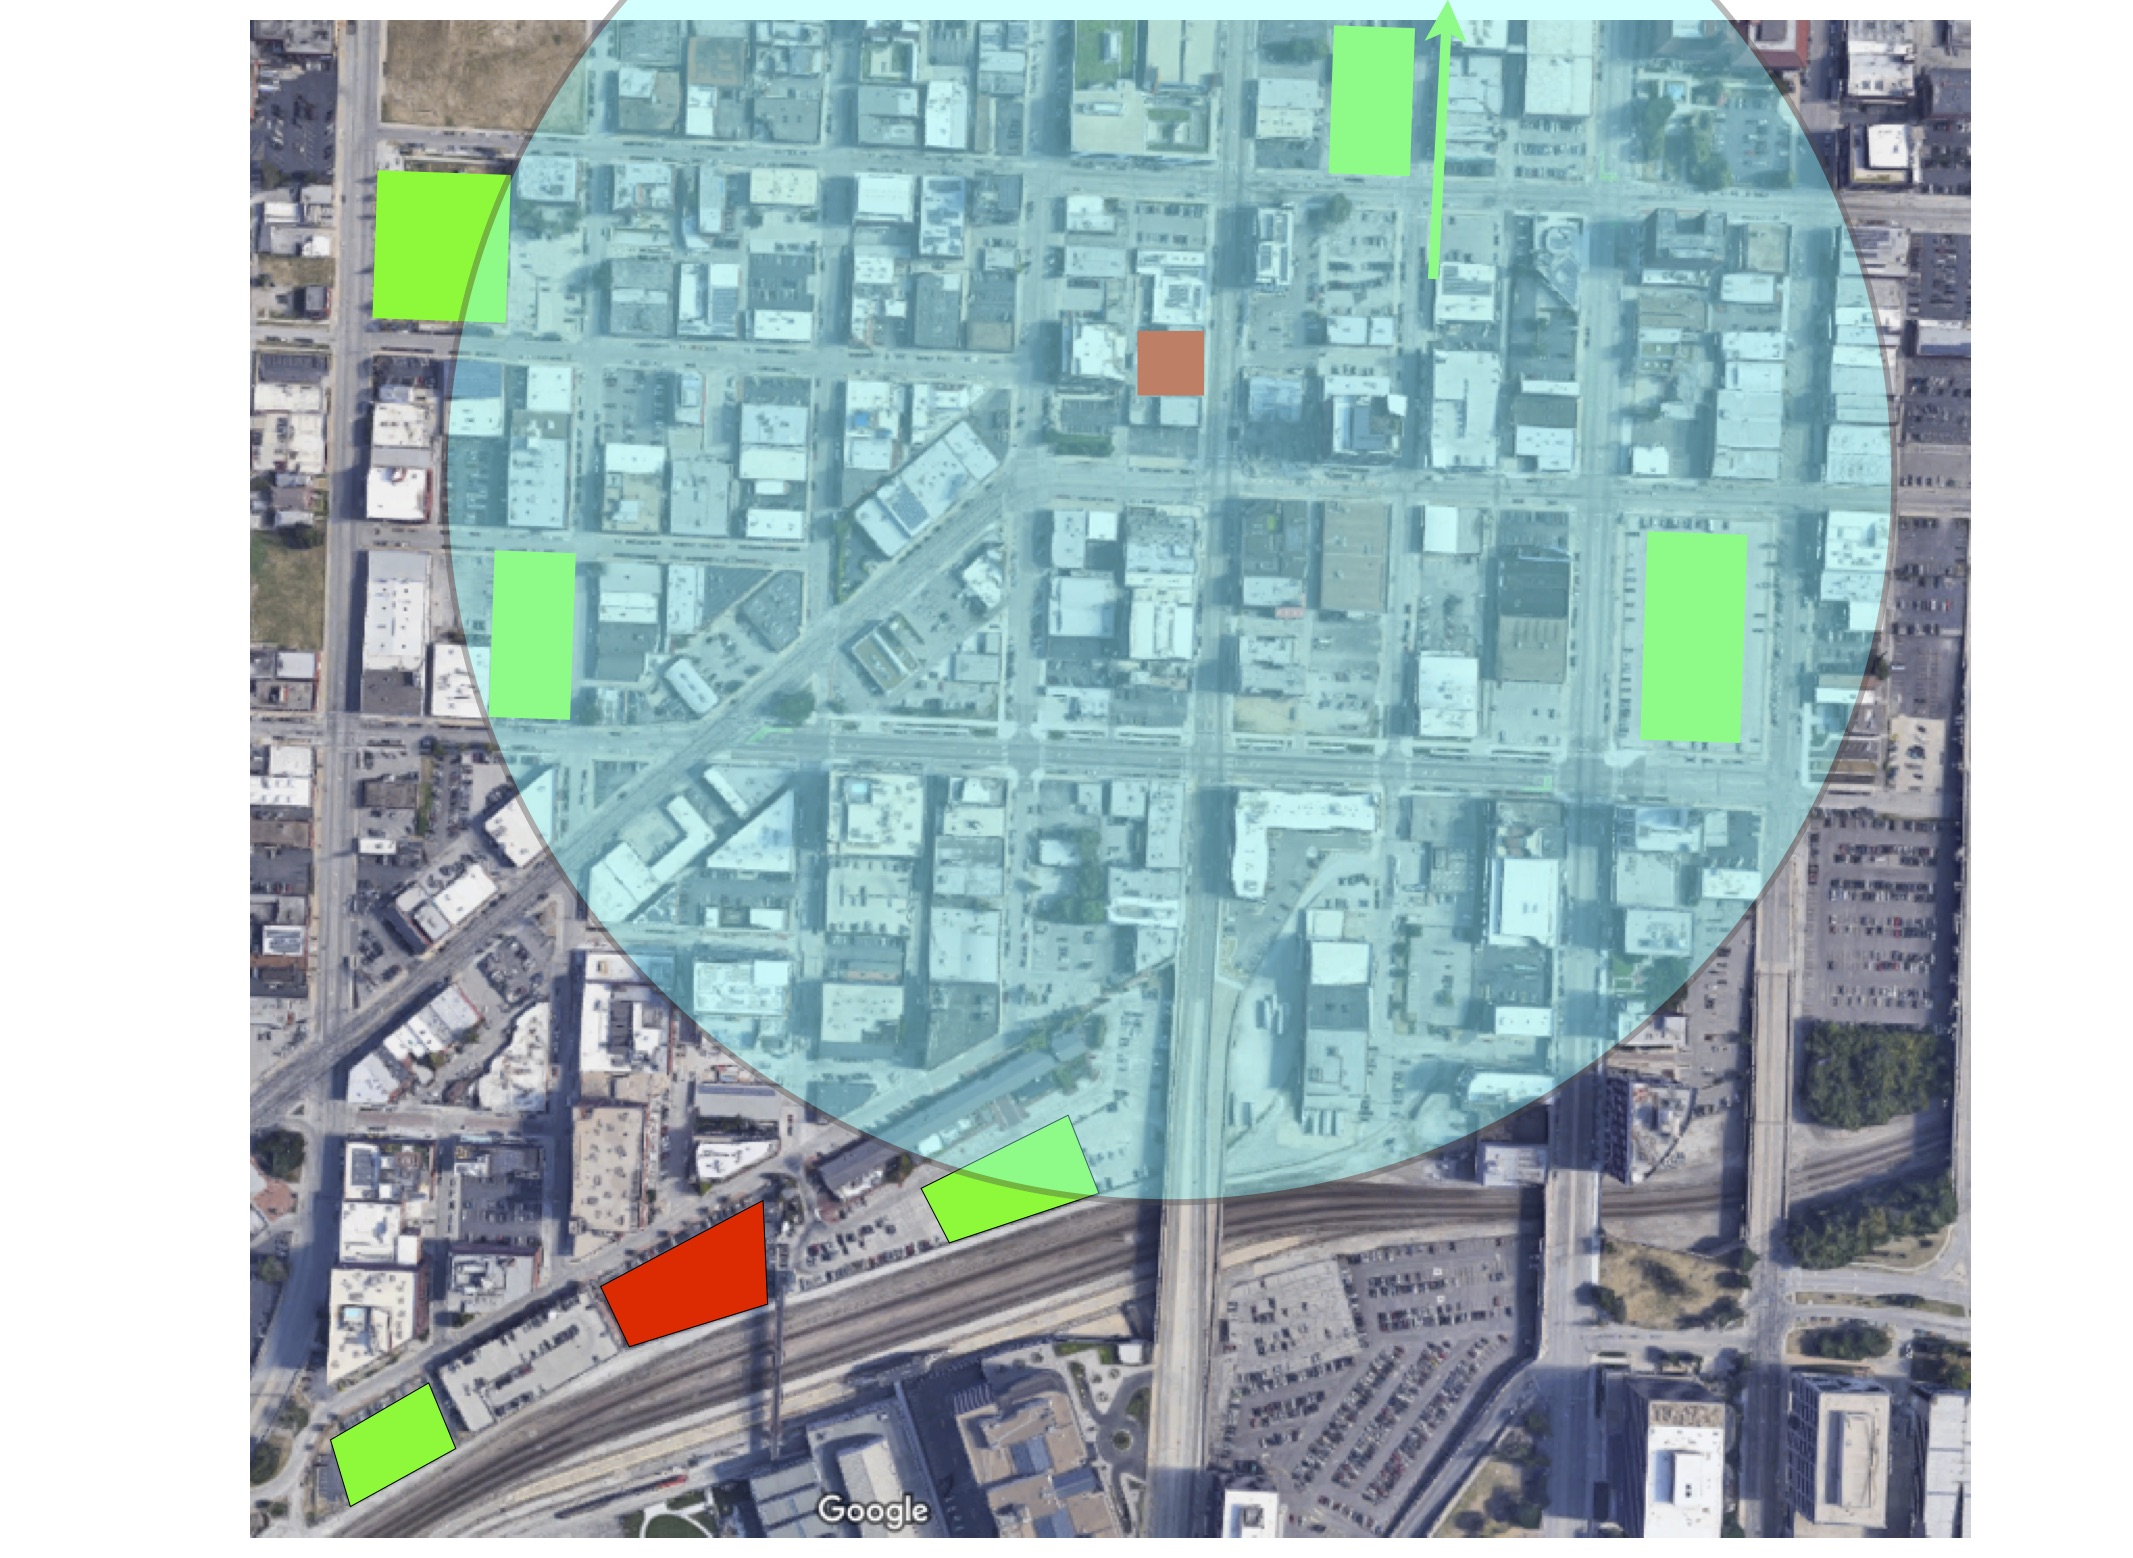 The same area shown with a 5-minute walk radius, the two project sites, and a series of potential sites for public, shared garages. Nearly all are within a 5 minute walk of the streetcar stop at 19th and Main Streets. These are to highlight a few of several potential sites that could accommodate a sizable garage.